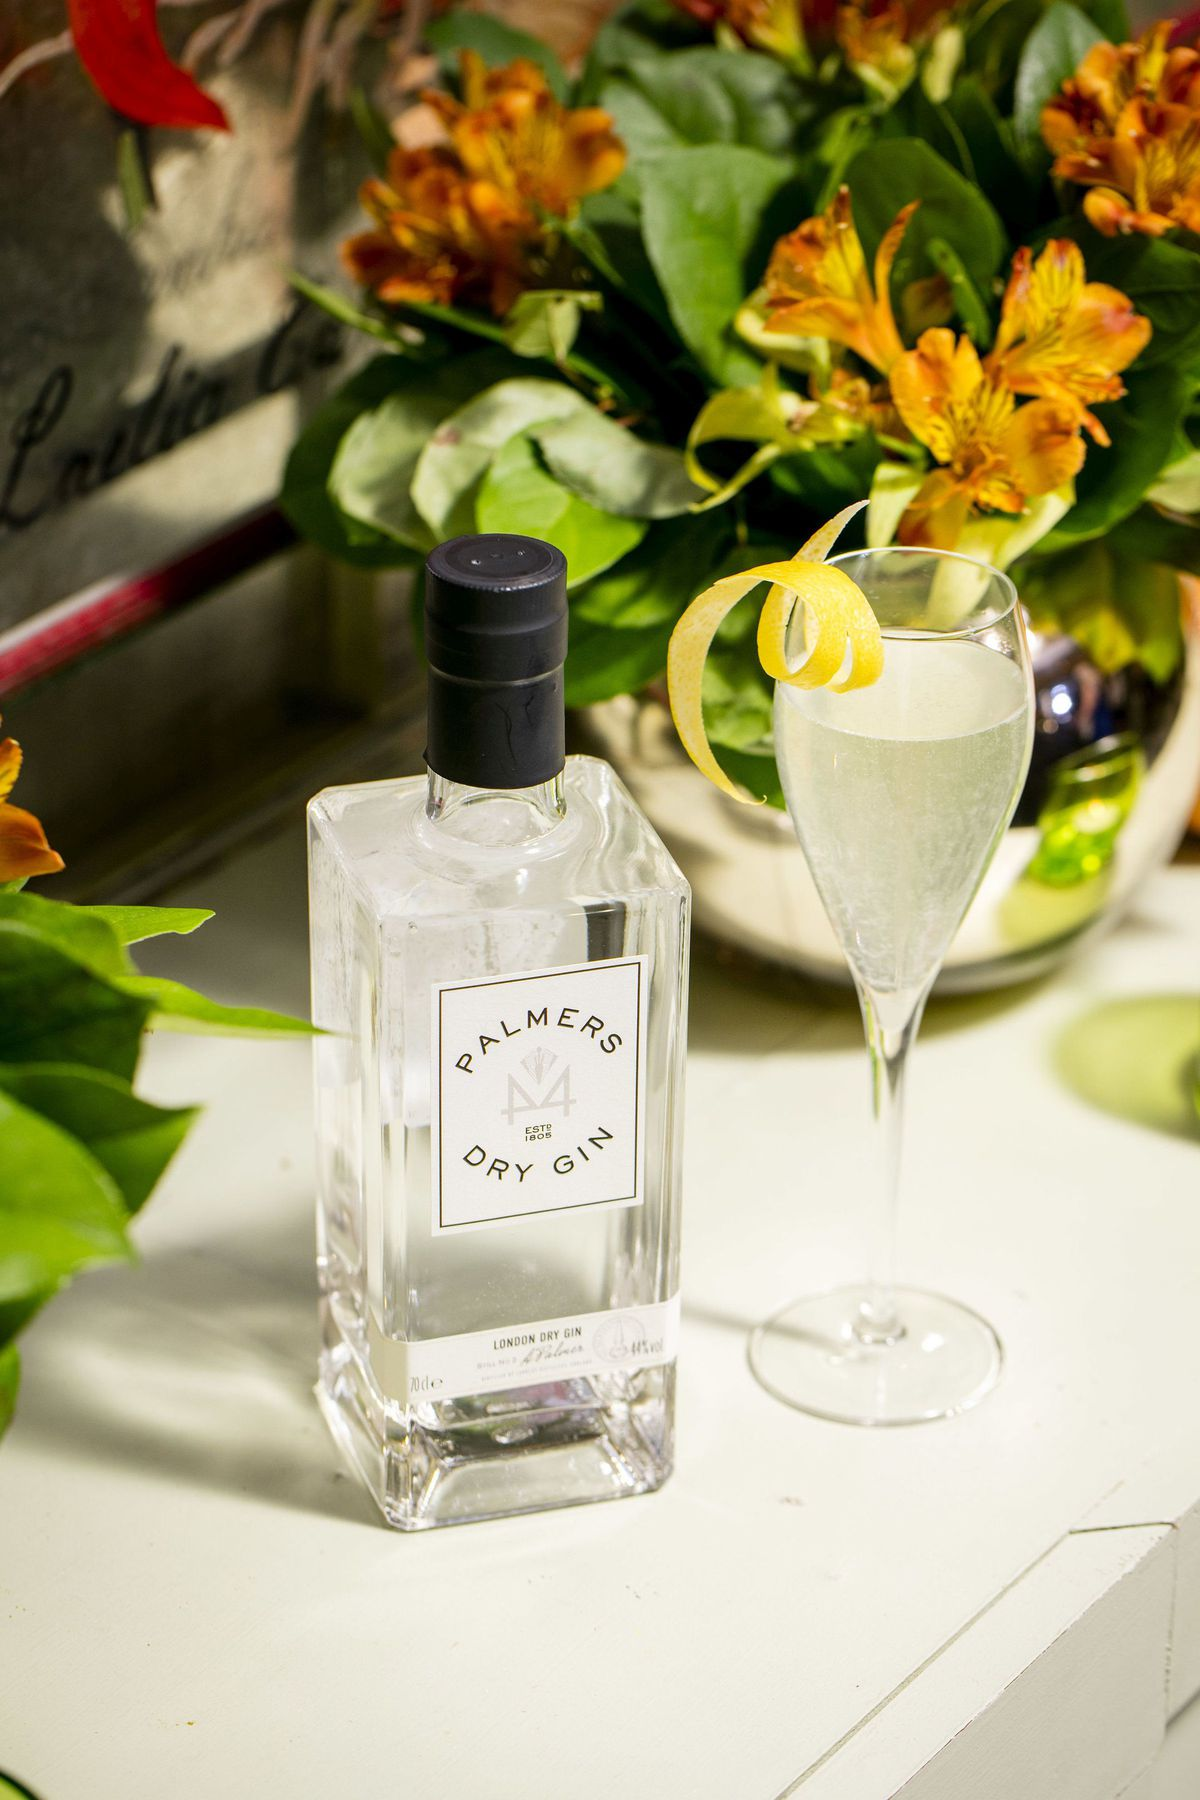 Palmers London Dry Gin which was produced in memory of Natalie's late grandmother Angela Palmer